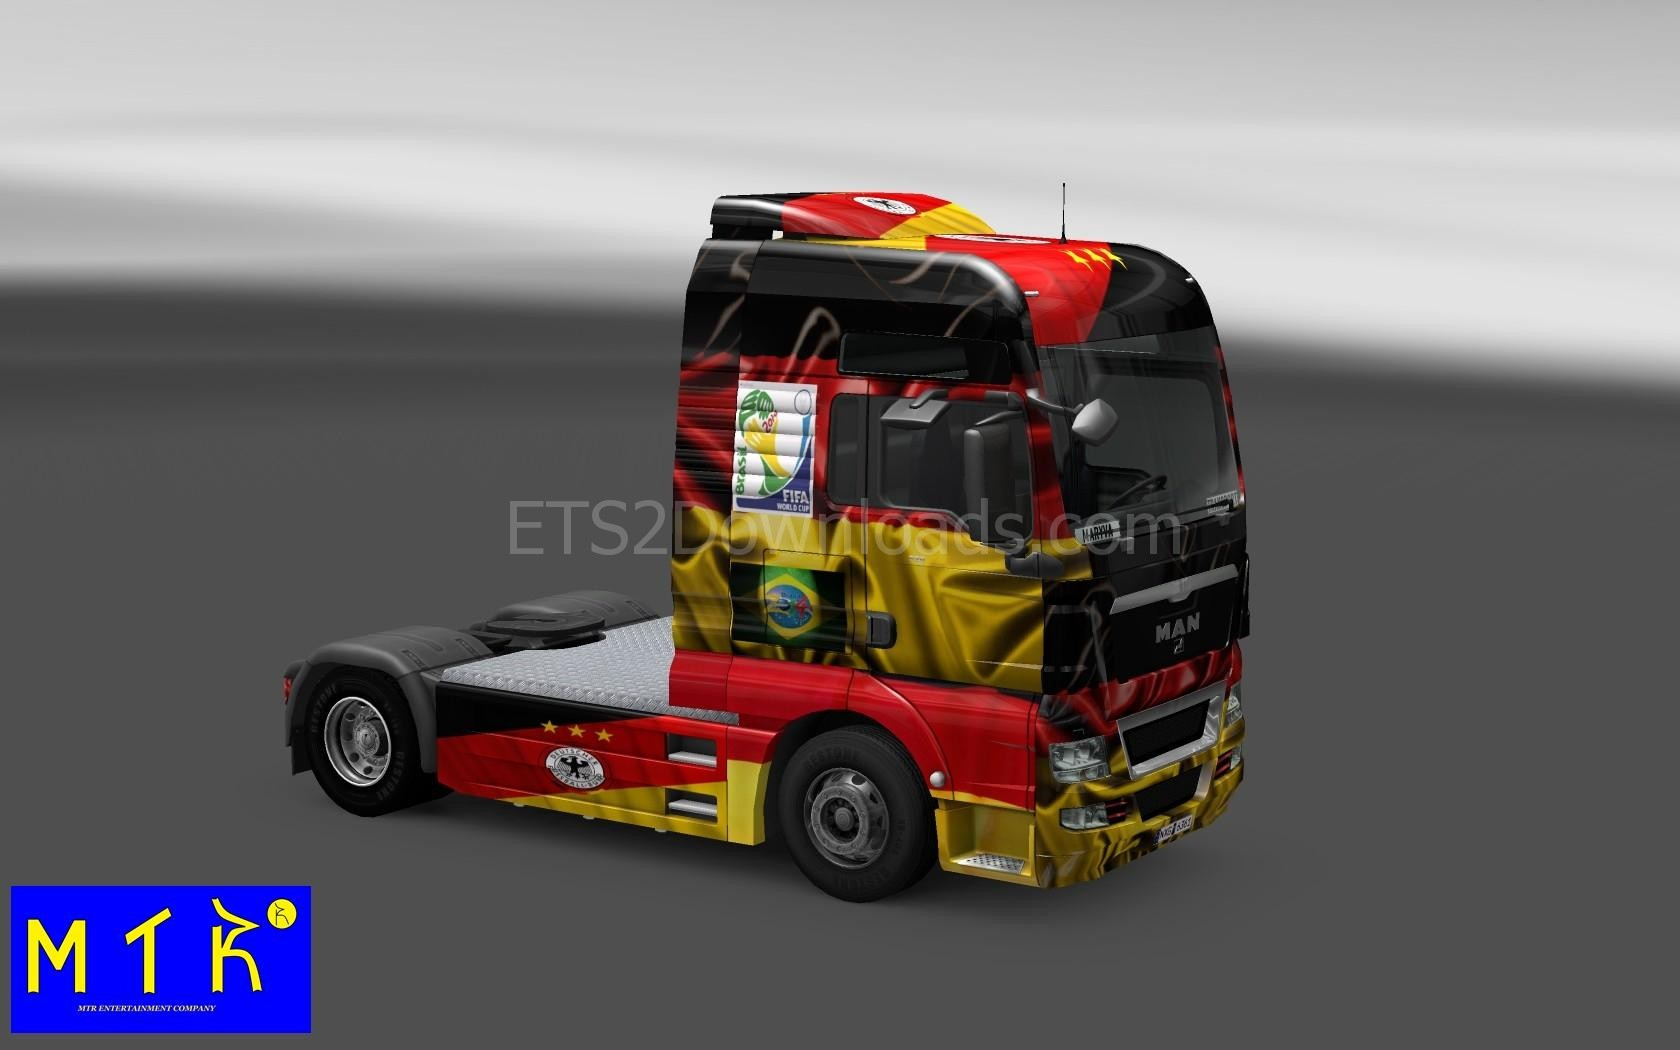 germany-copa-2014-skin-man-tgx-ets2-1